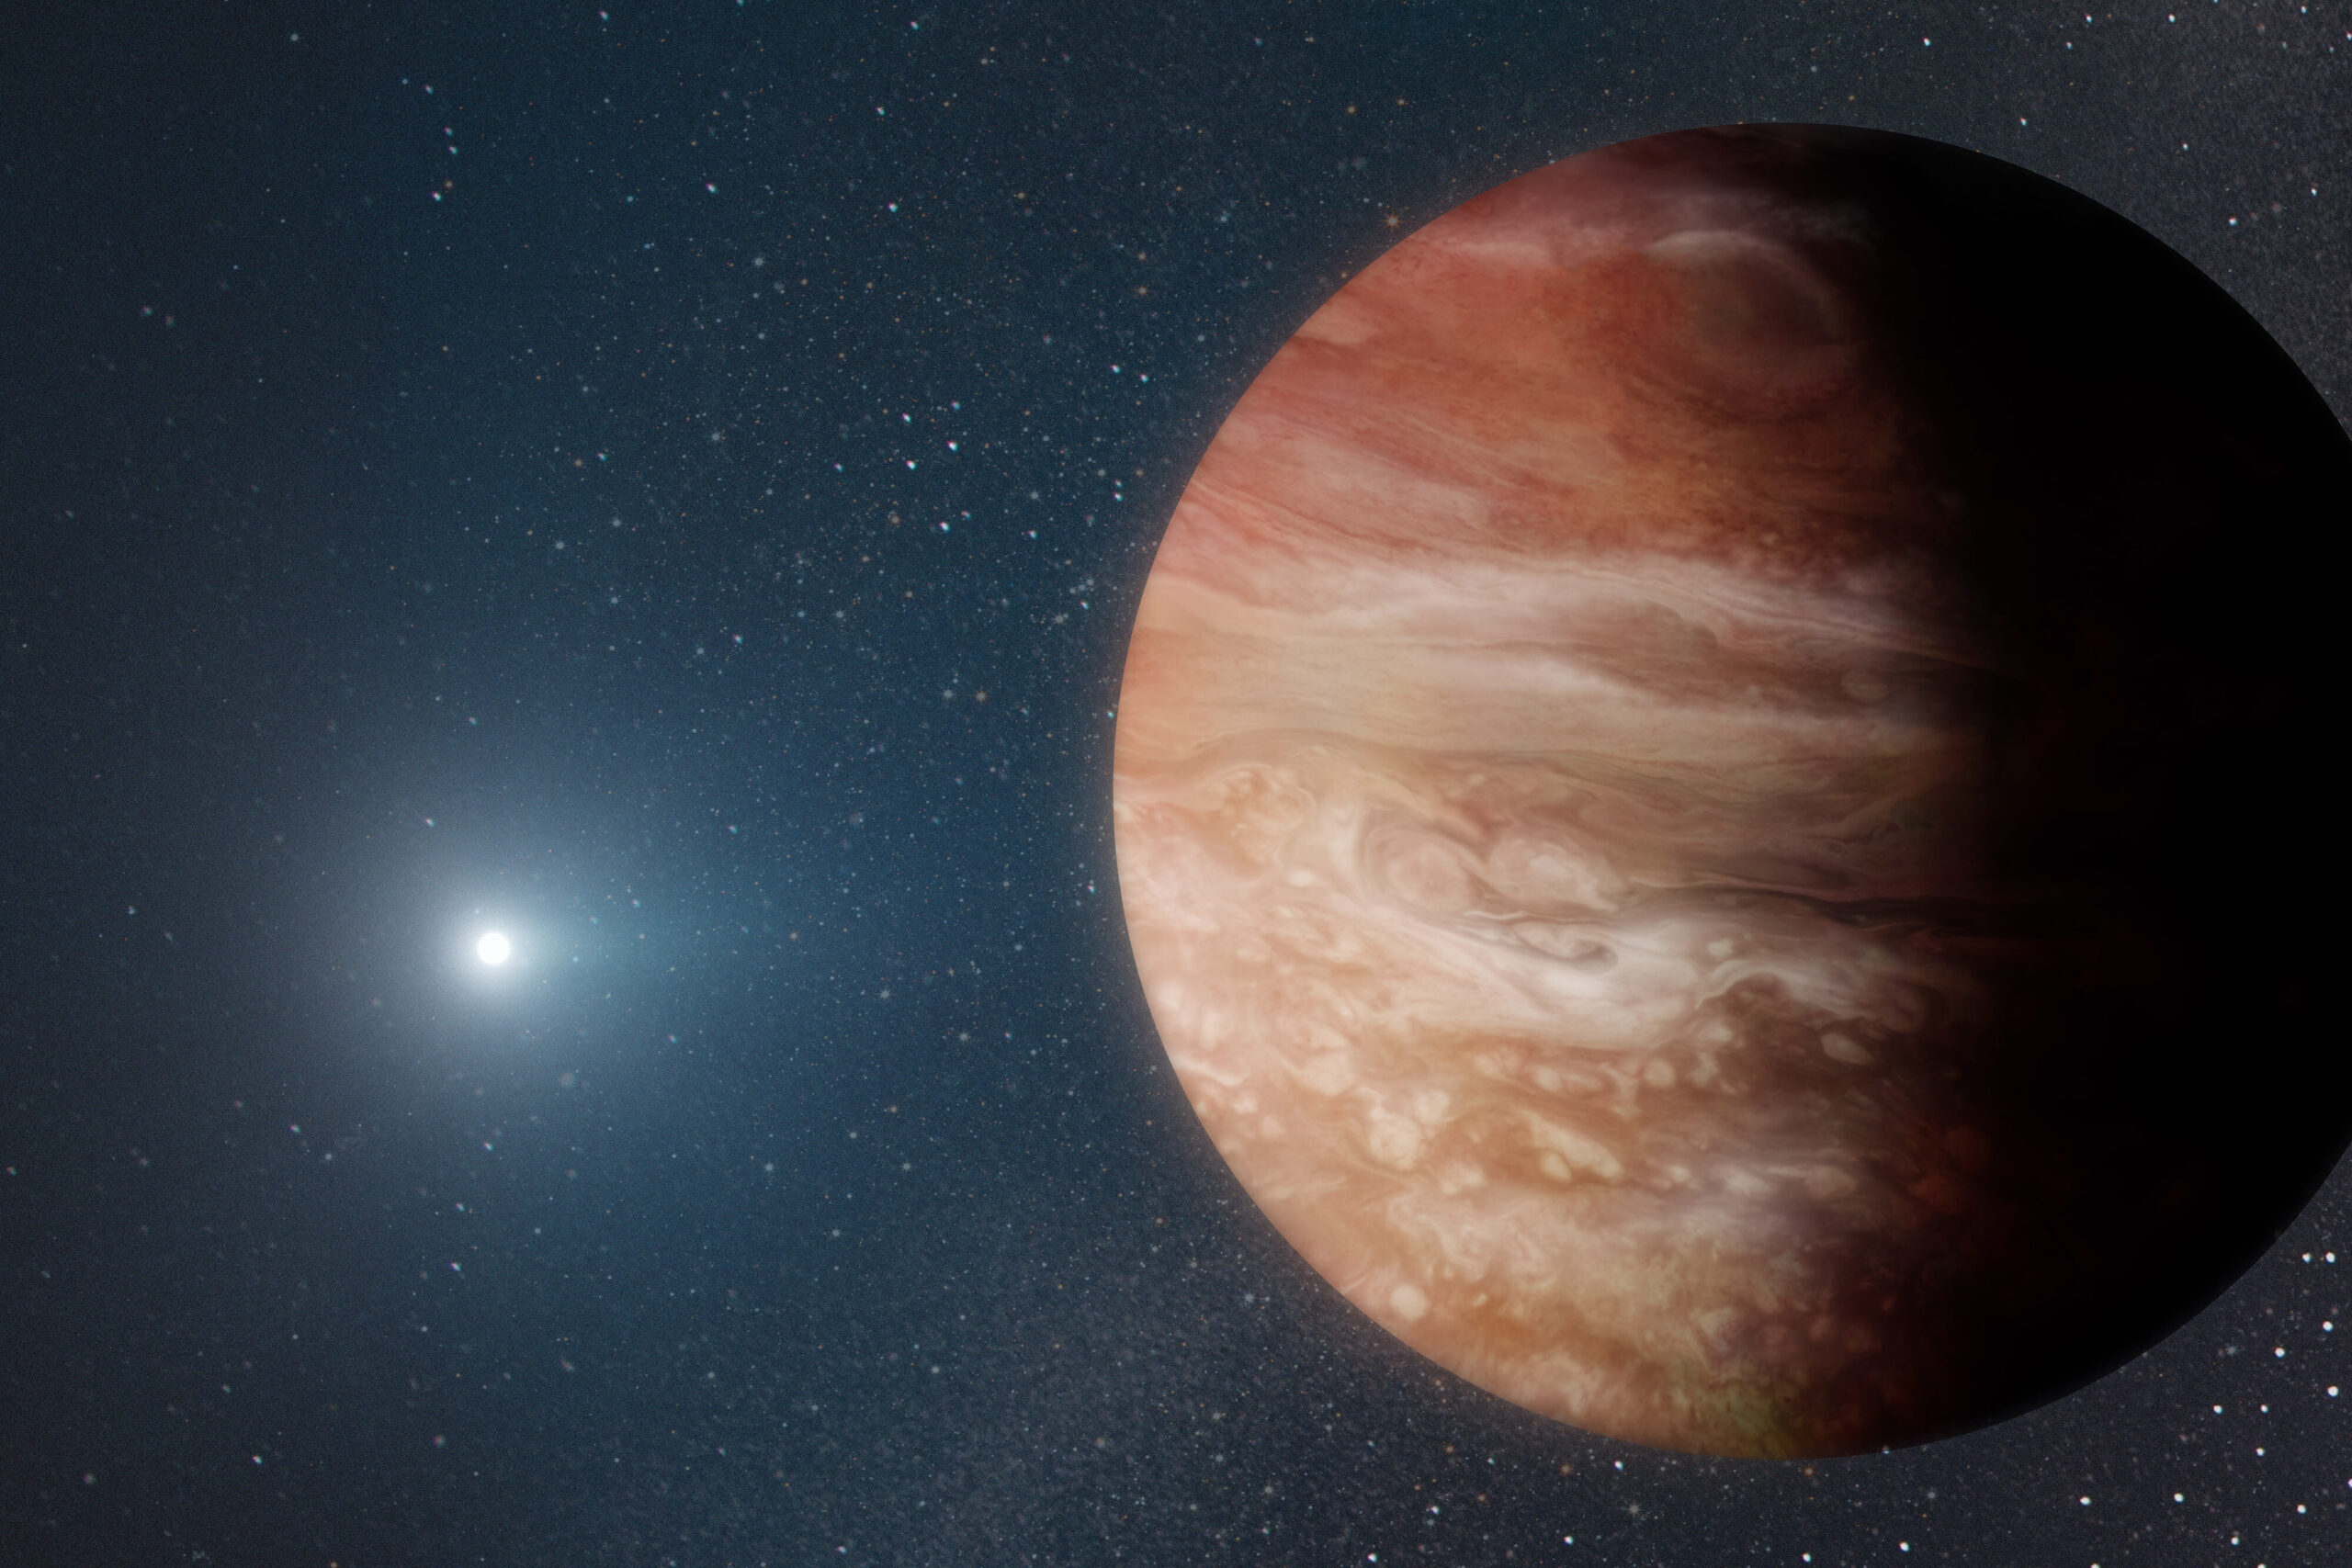 <i>Adam Makarenko/W. M. Keck Observatory</i><br/>The discovery of a distant Jupiter-like planet orbiting a dead star reveals what may happen in our solar system when the sun dies in about 5 billion years